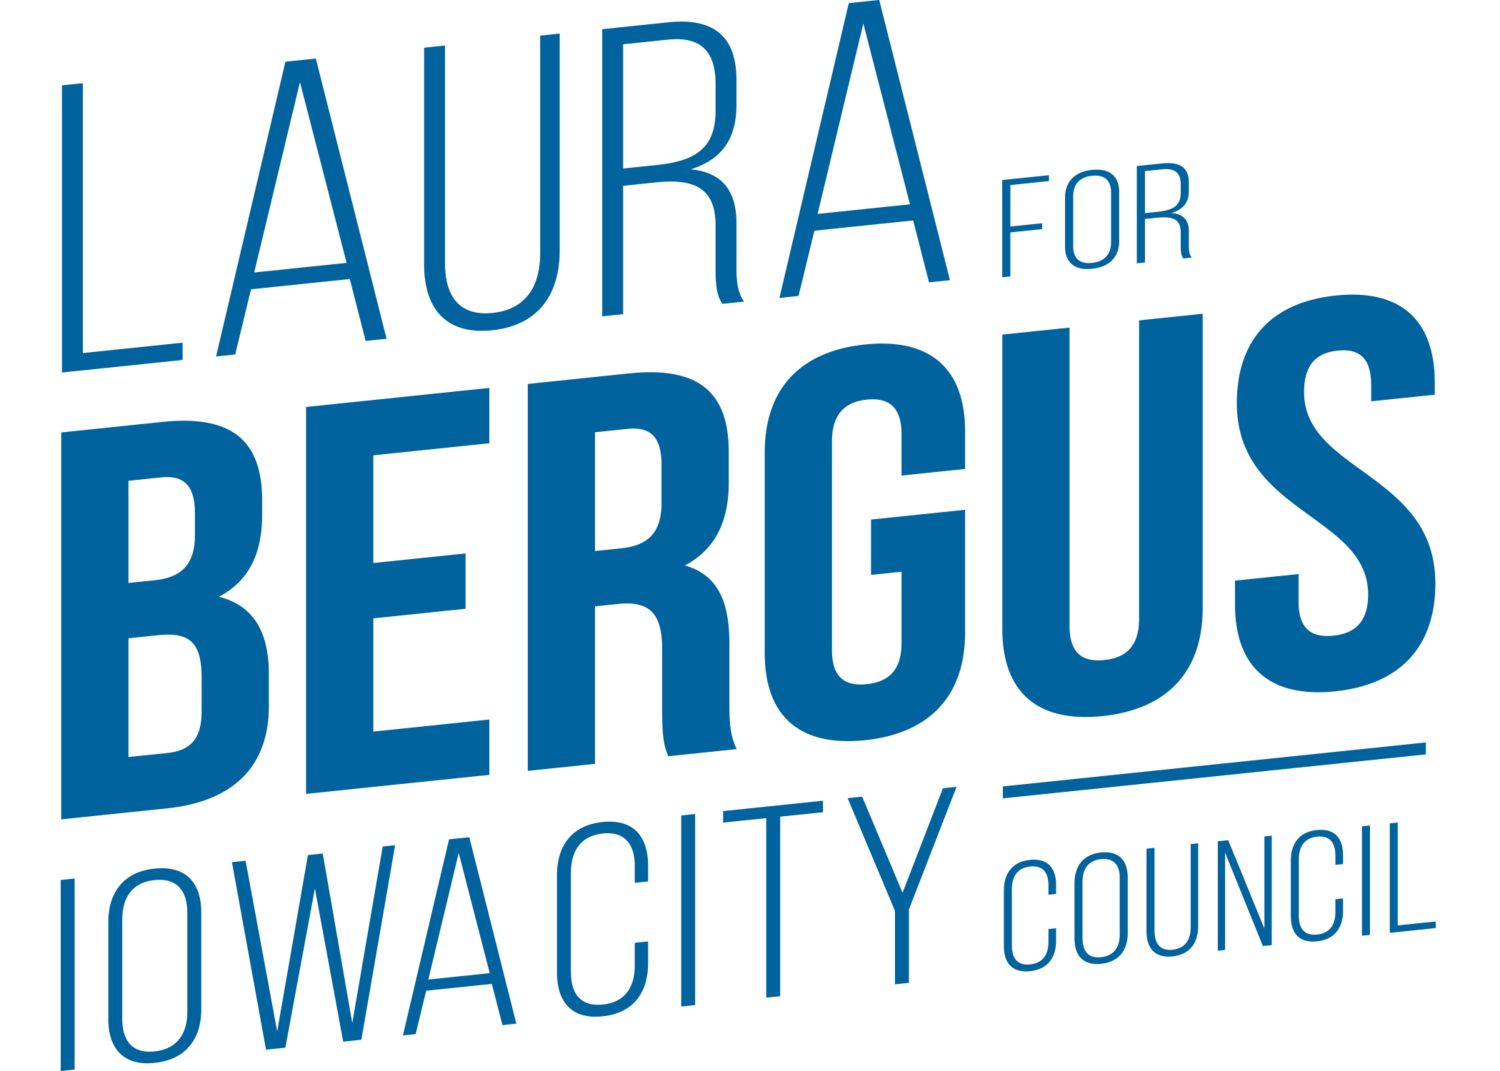 Laura Bergus for Iowa City Council